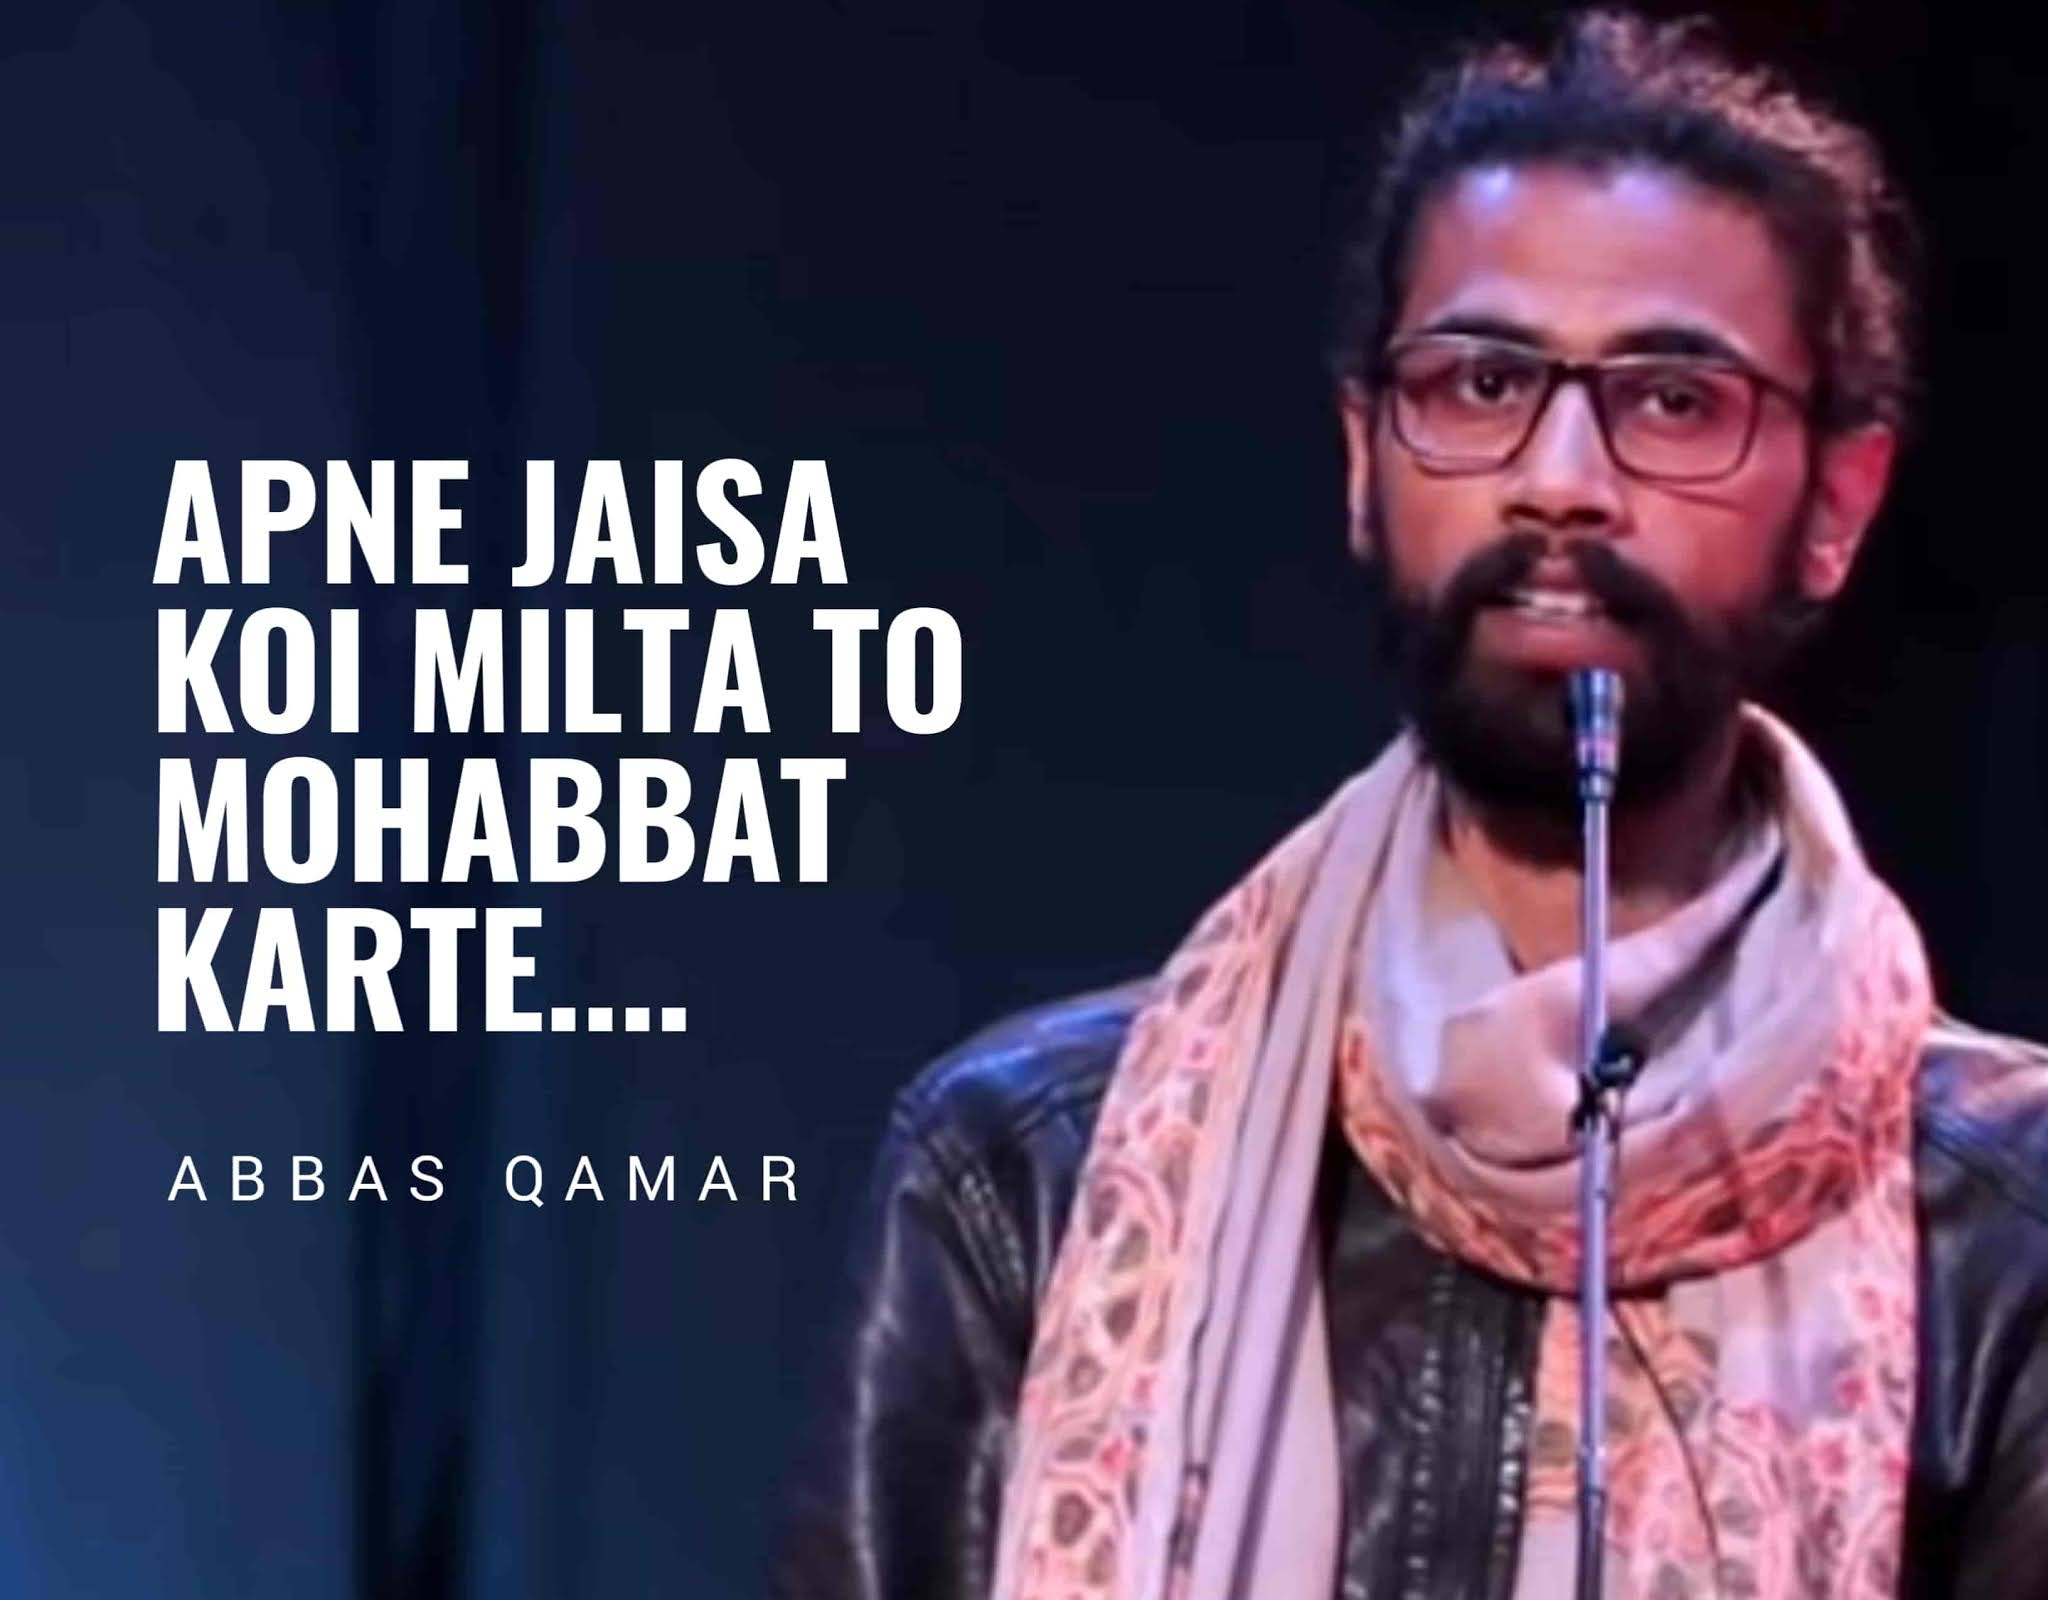 """A Beautiful Shayari """"Apne Jaisa Koi Milta To Mohabbat Karte"""" which is written and Performed by young generation poet Abbas Qamar on the stage of 'Jashn-e-Rekhta'."""